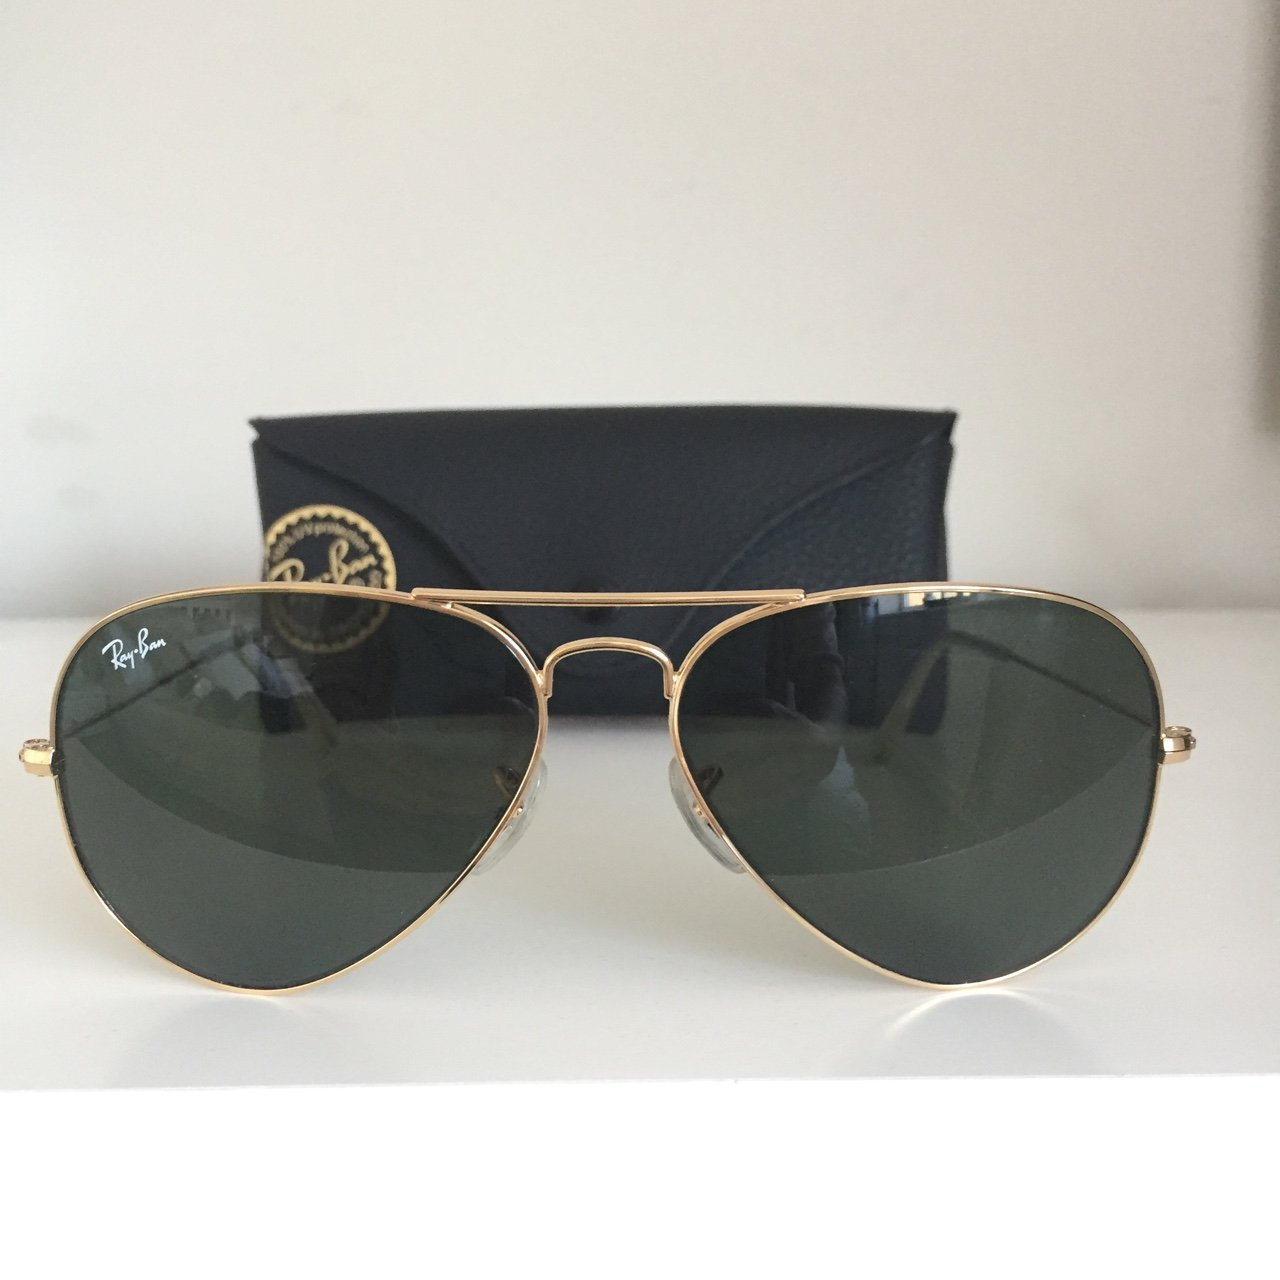 968ce9fe40 100% genuine women s Ray Ban sunglasses. In great condition. - Depop